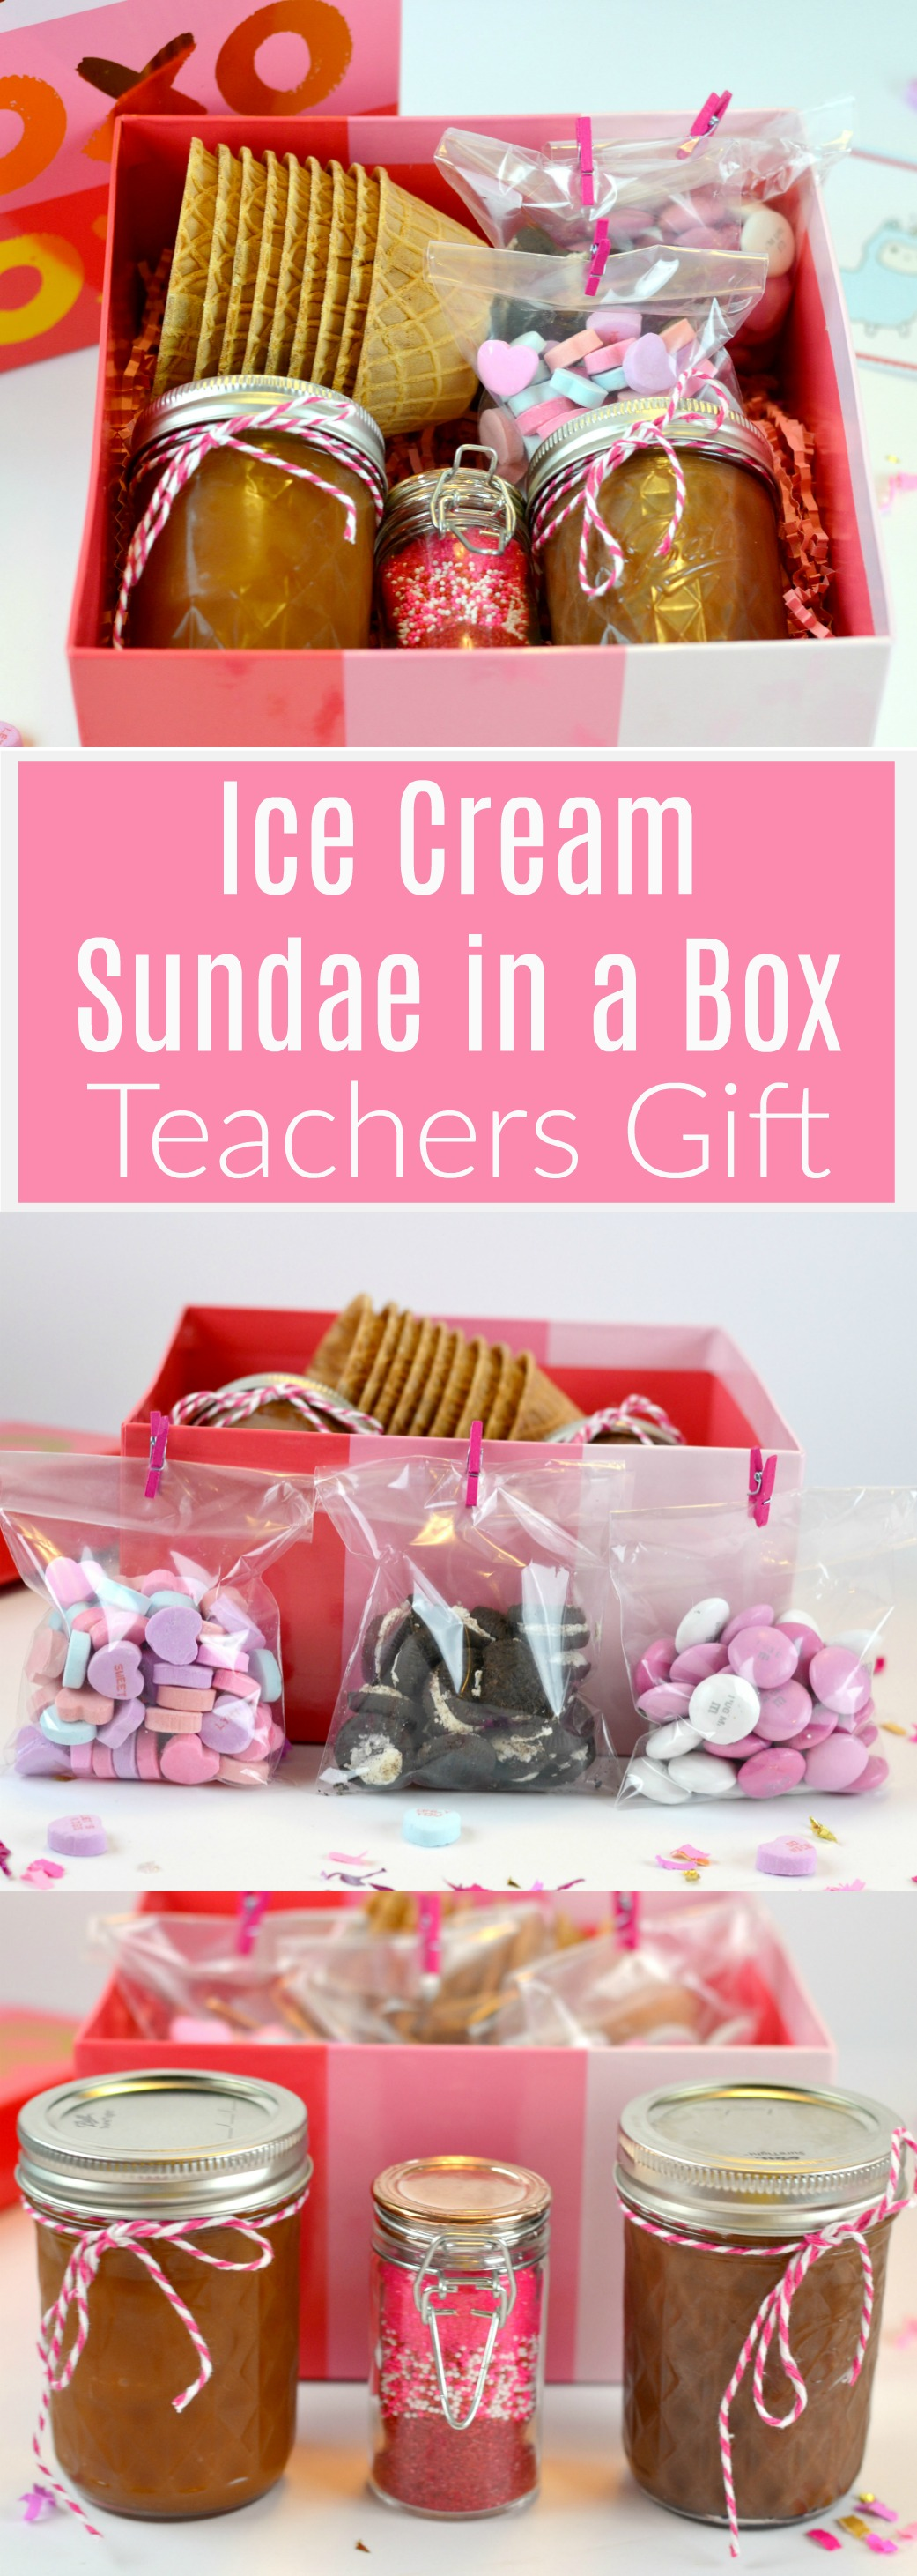 Ice Cream Sundae in a Box Teachers Gift